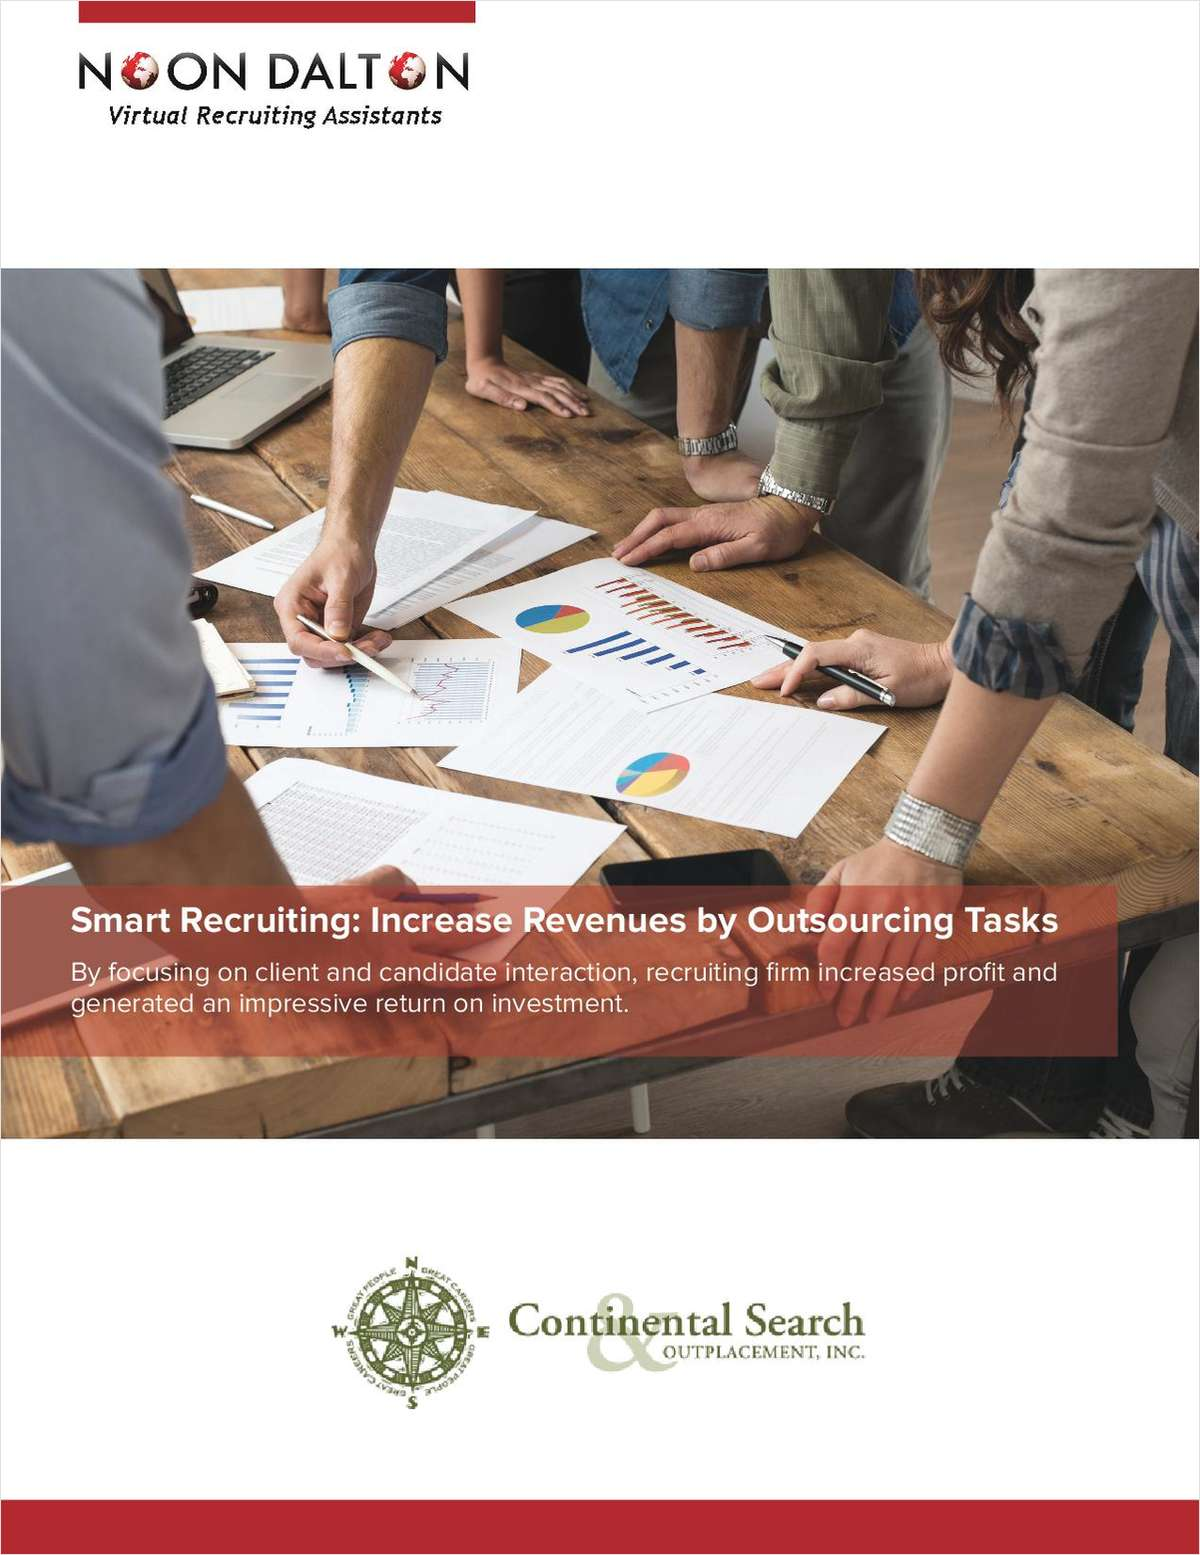 Independent Recruiter's Guide to using Virtual Recruiting Assistants